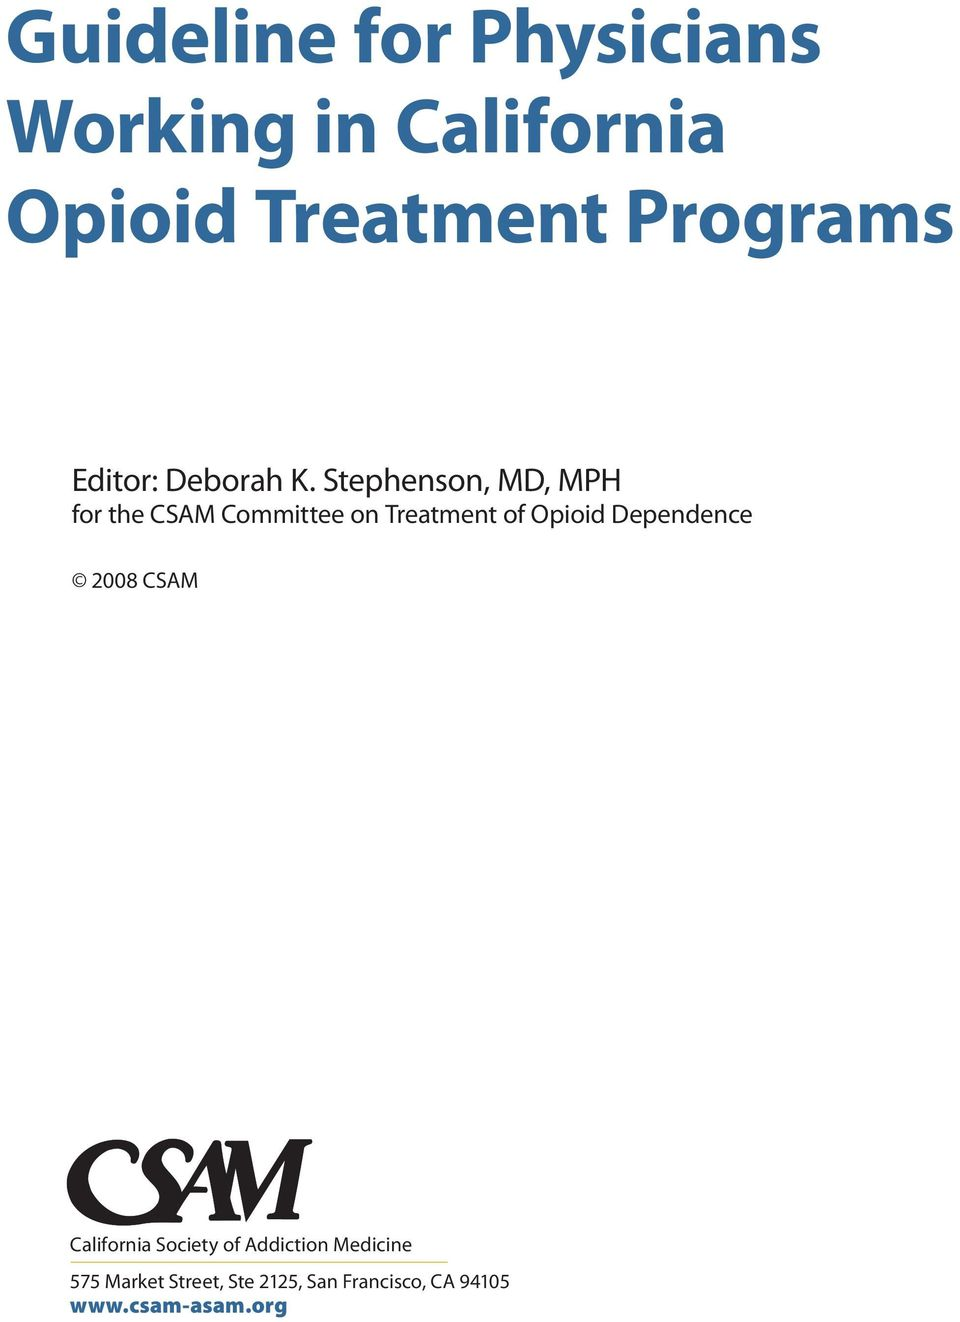 Stephenson, MD, MPH for the CSAM Committee on Treatment of Opioid